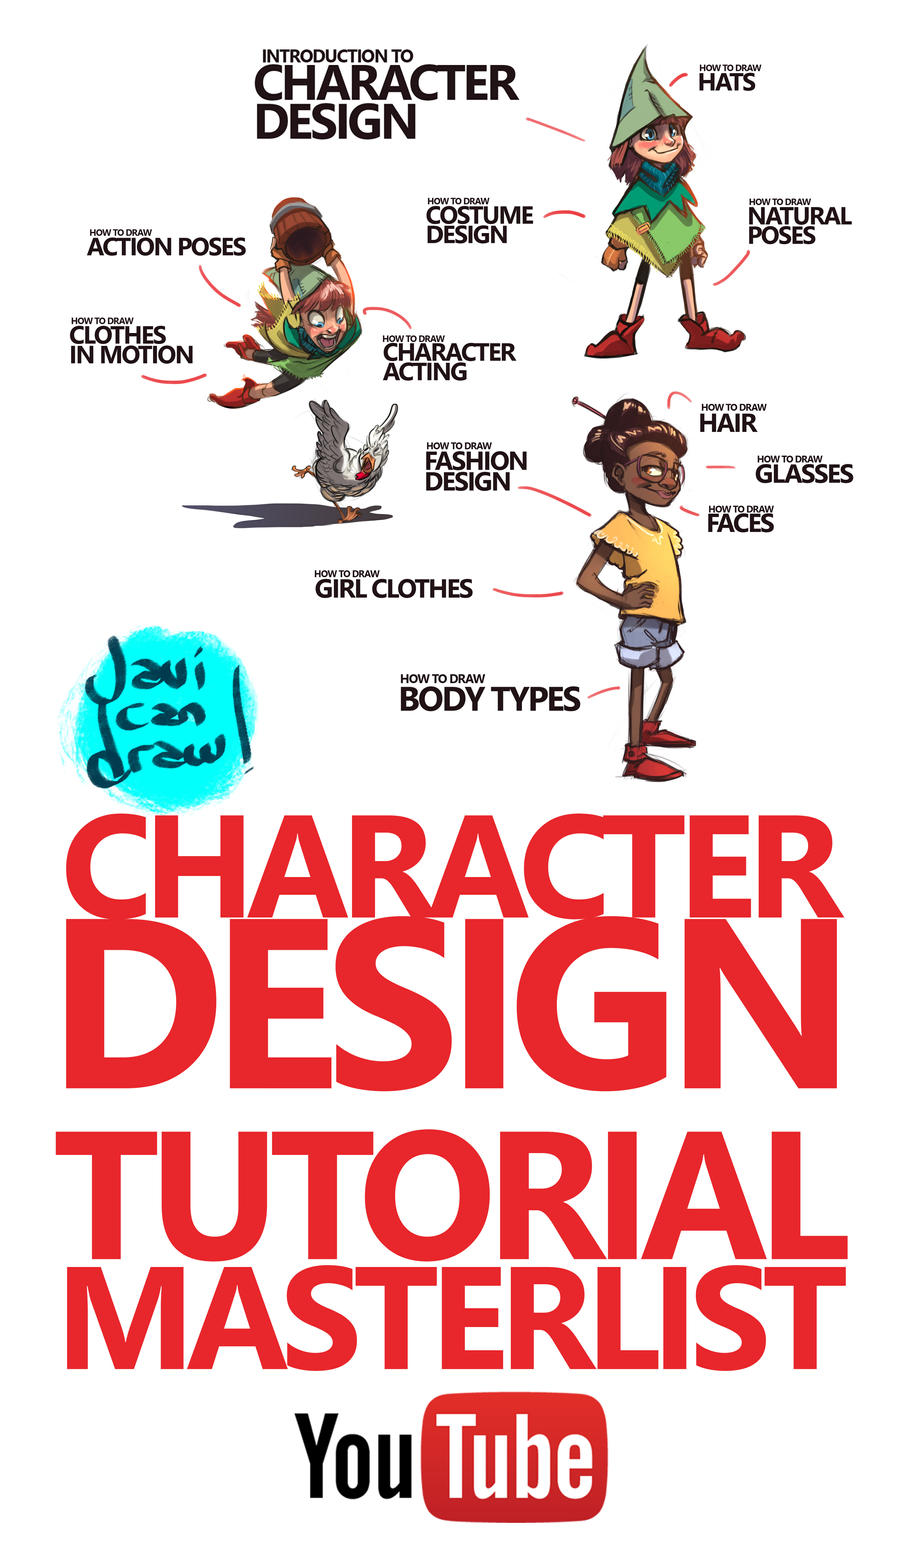 Character Design Tutorials : Character design tutorial masterlist on youtube by